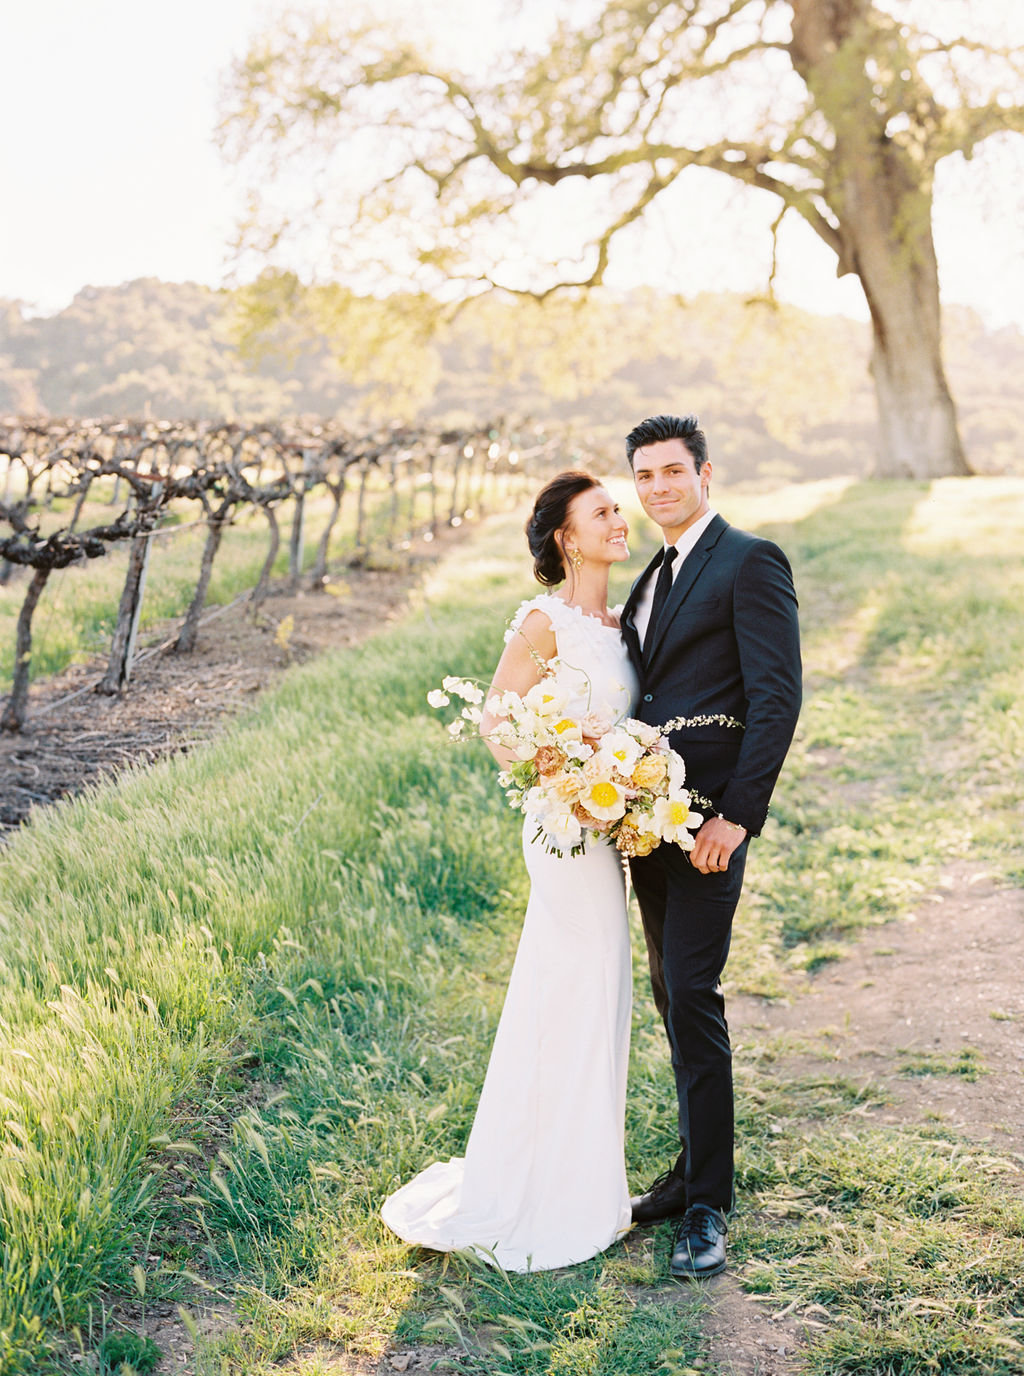 Hammersky-Vineyards-Wedding-by-San-Luis-Obispo-Wedding-Planner-Embark-Event-Design-67